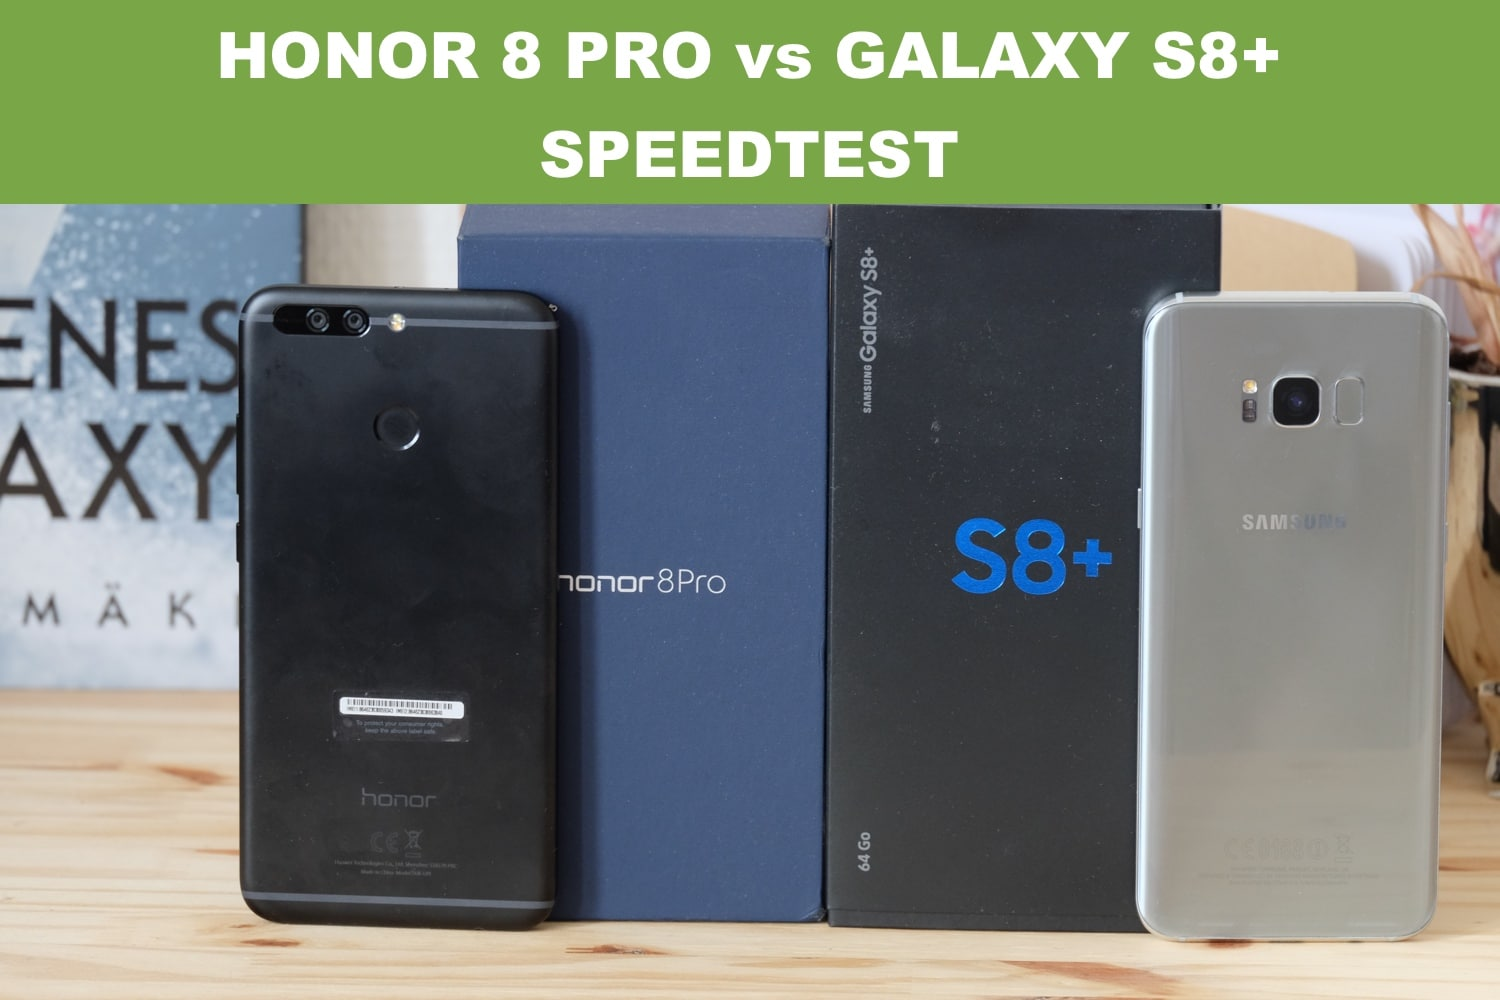 Honor 8 Pro VS Galaxy S8